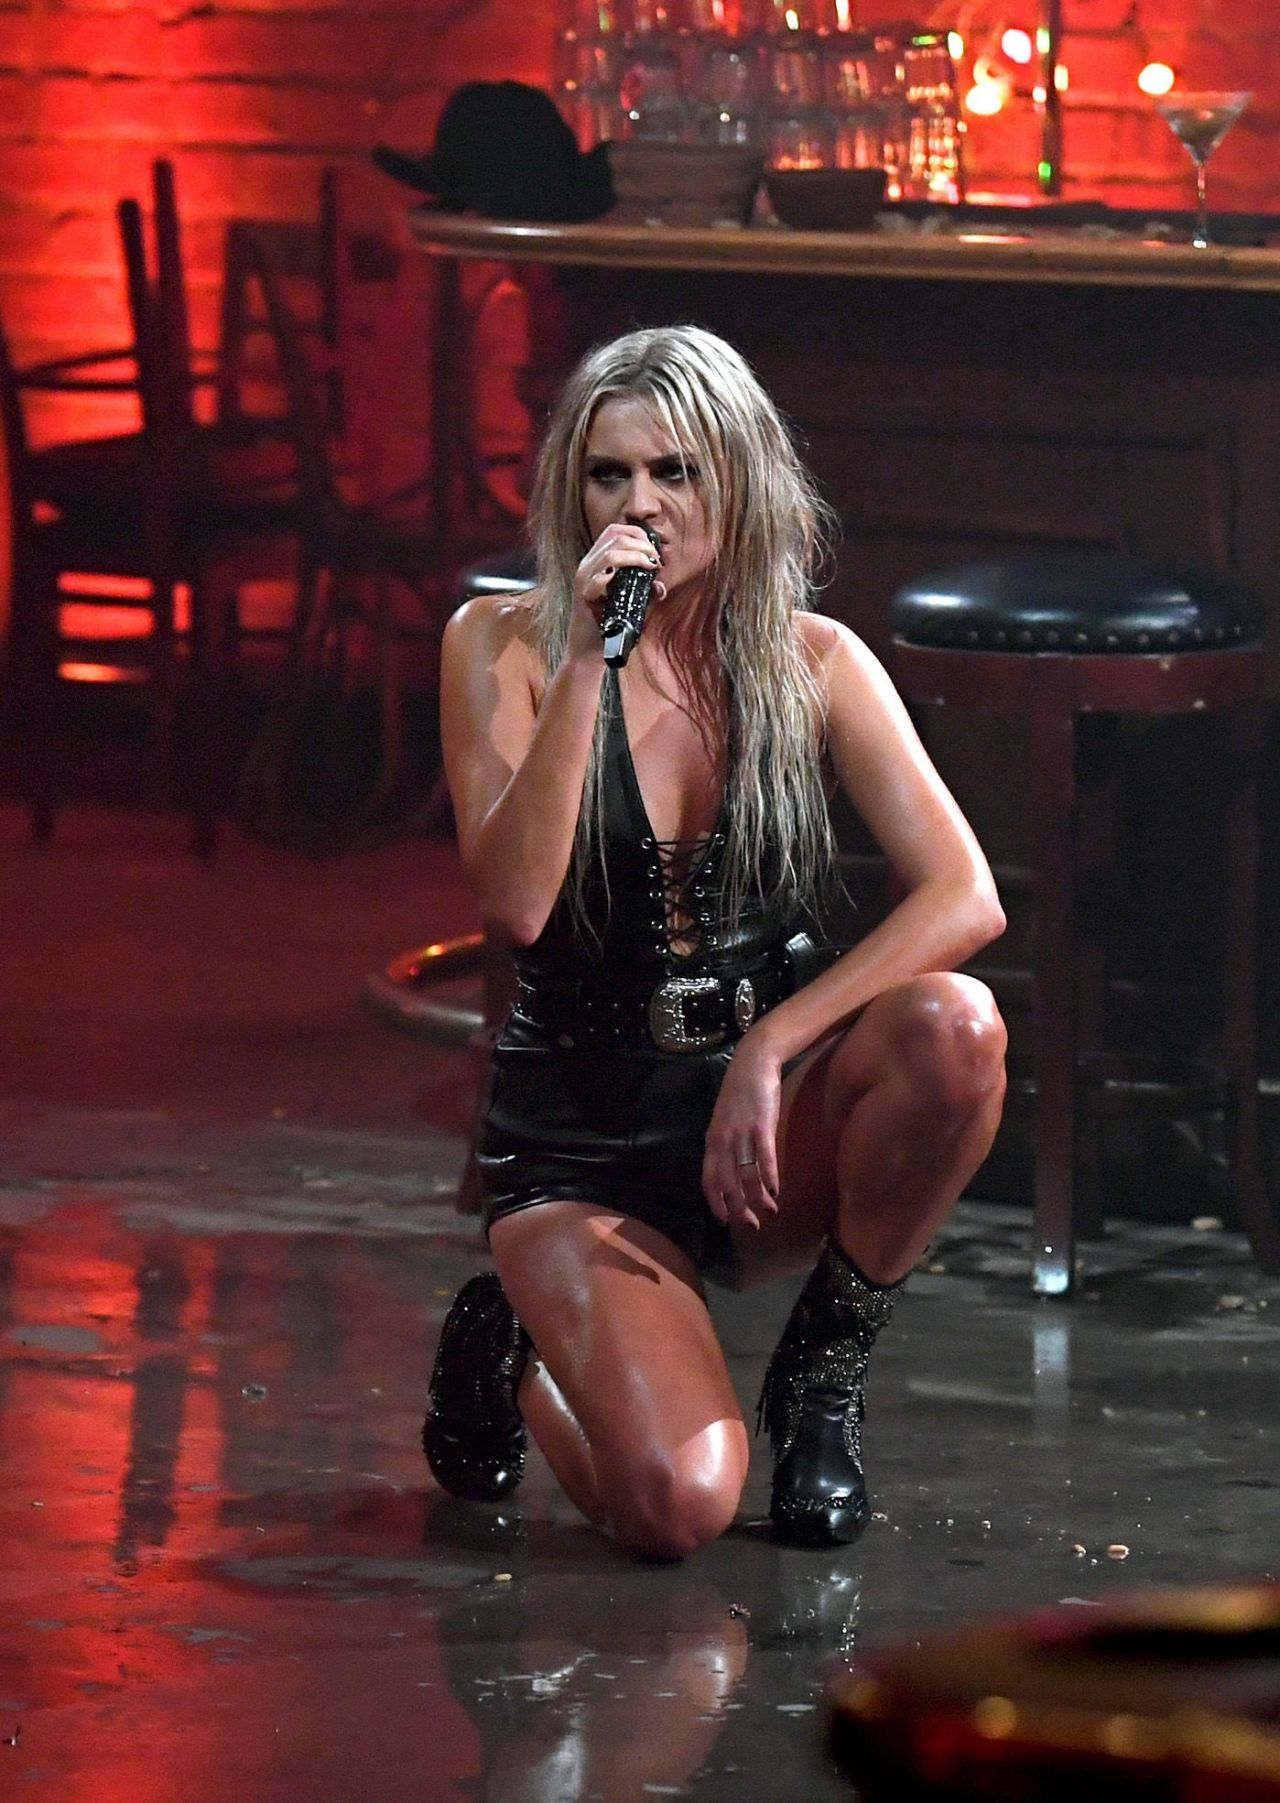 Fashion hits and misses from the 2017 CMT Music Awards